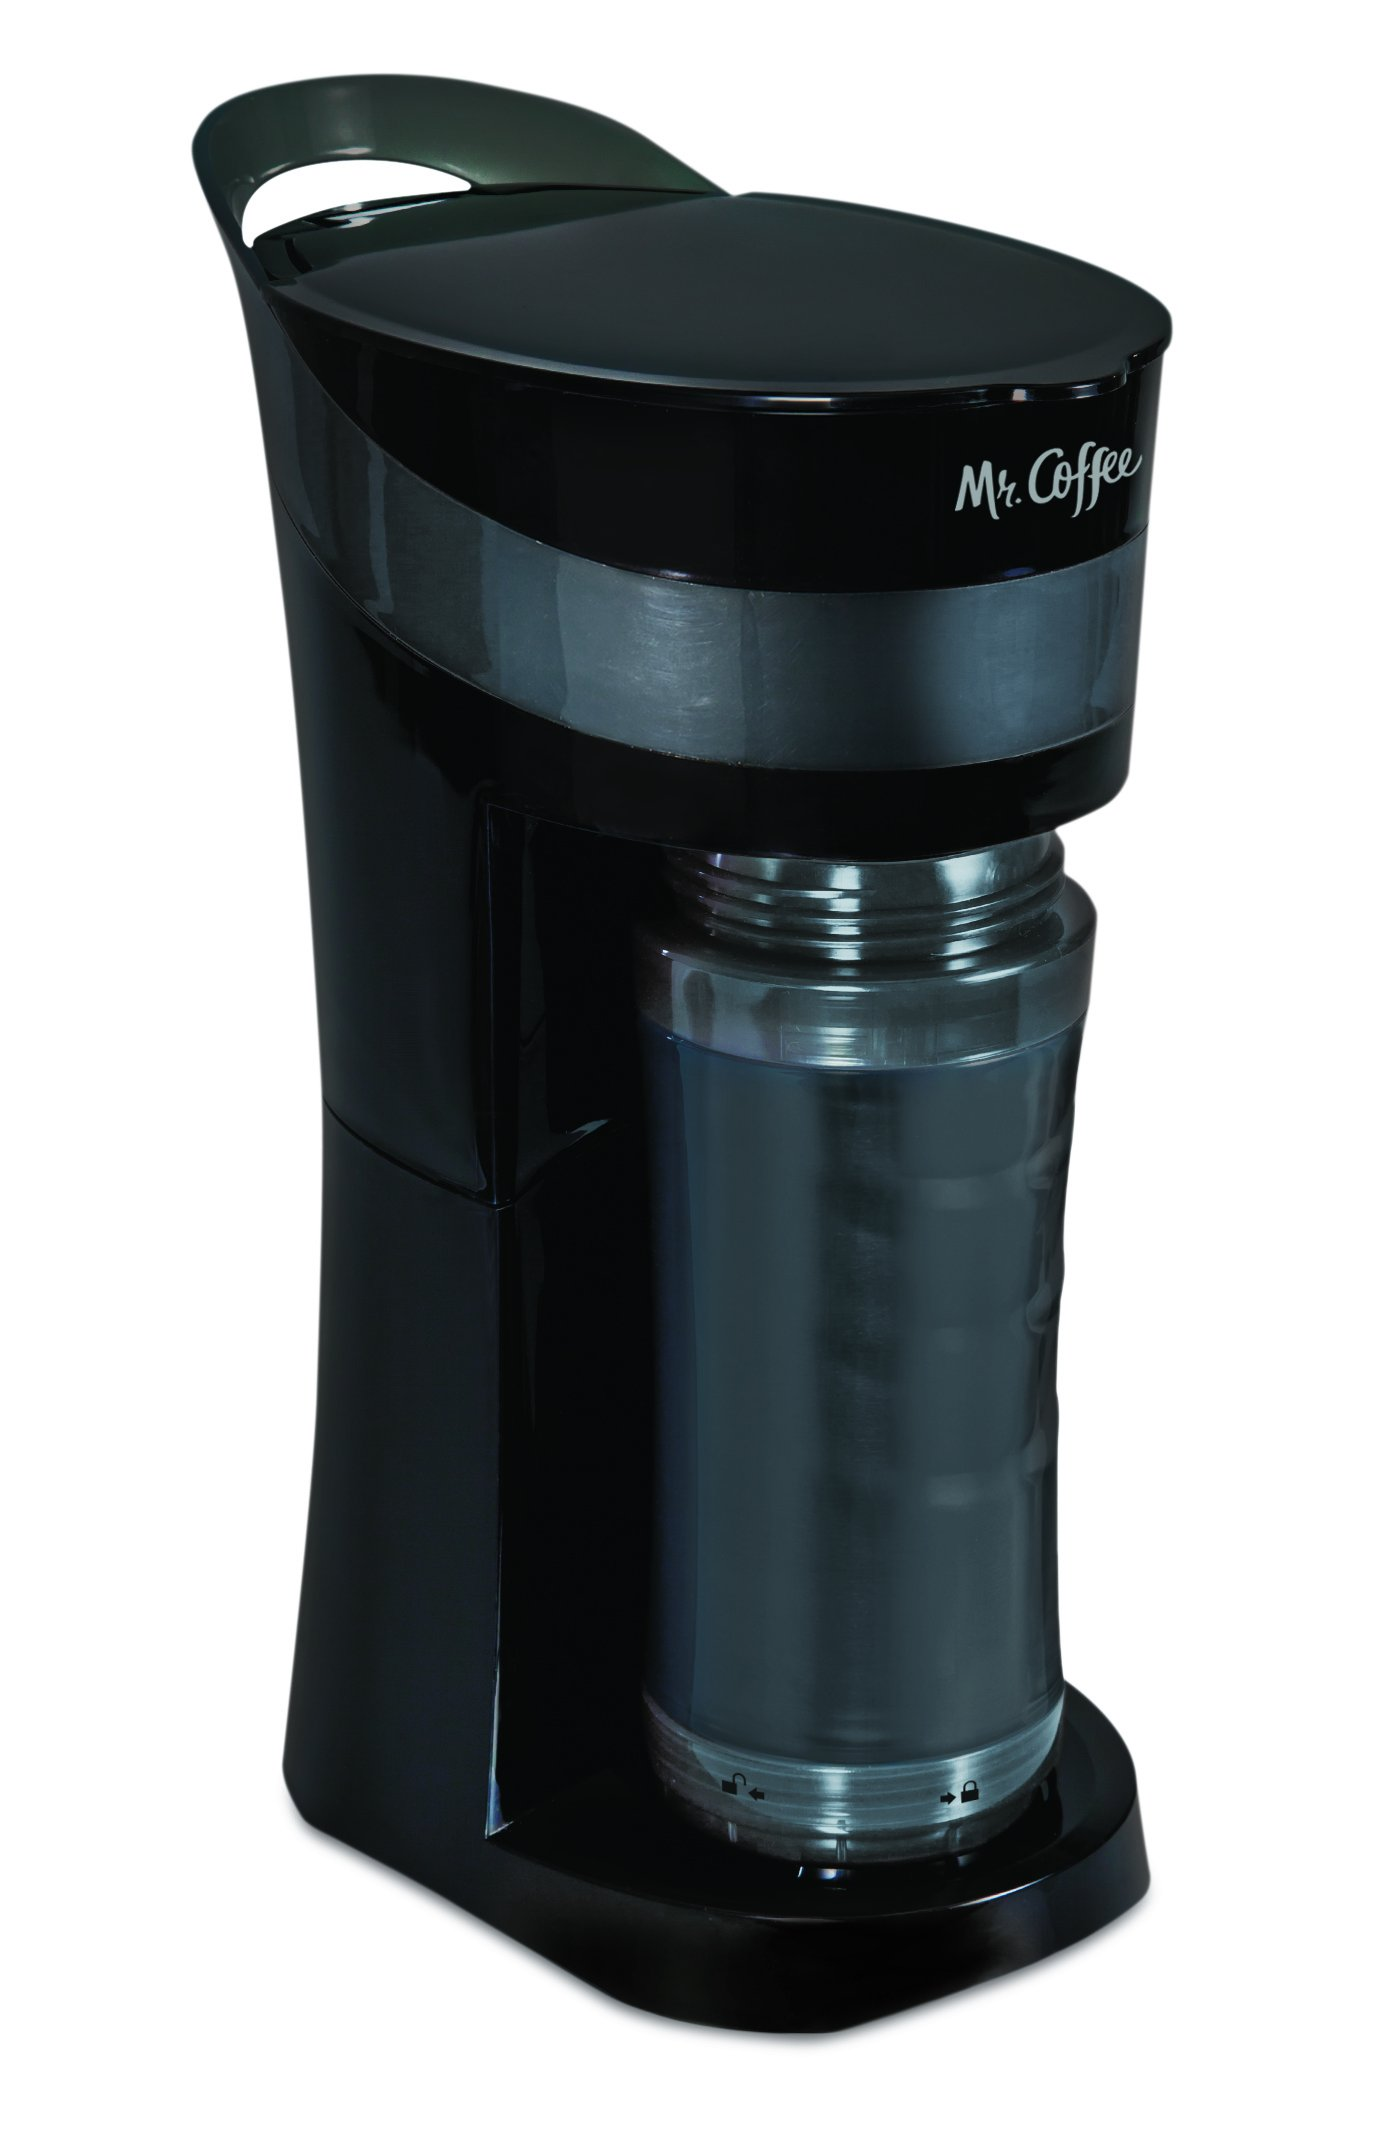 Oster Coffee Maker Filter Size : Mr. Coffee Pour! Brew! Go! 16-Ounce Personal Coffee Maker with Insulated TO-G... 72179234272 eBay